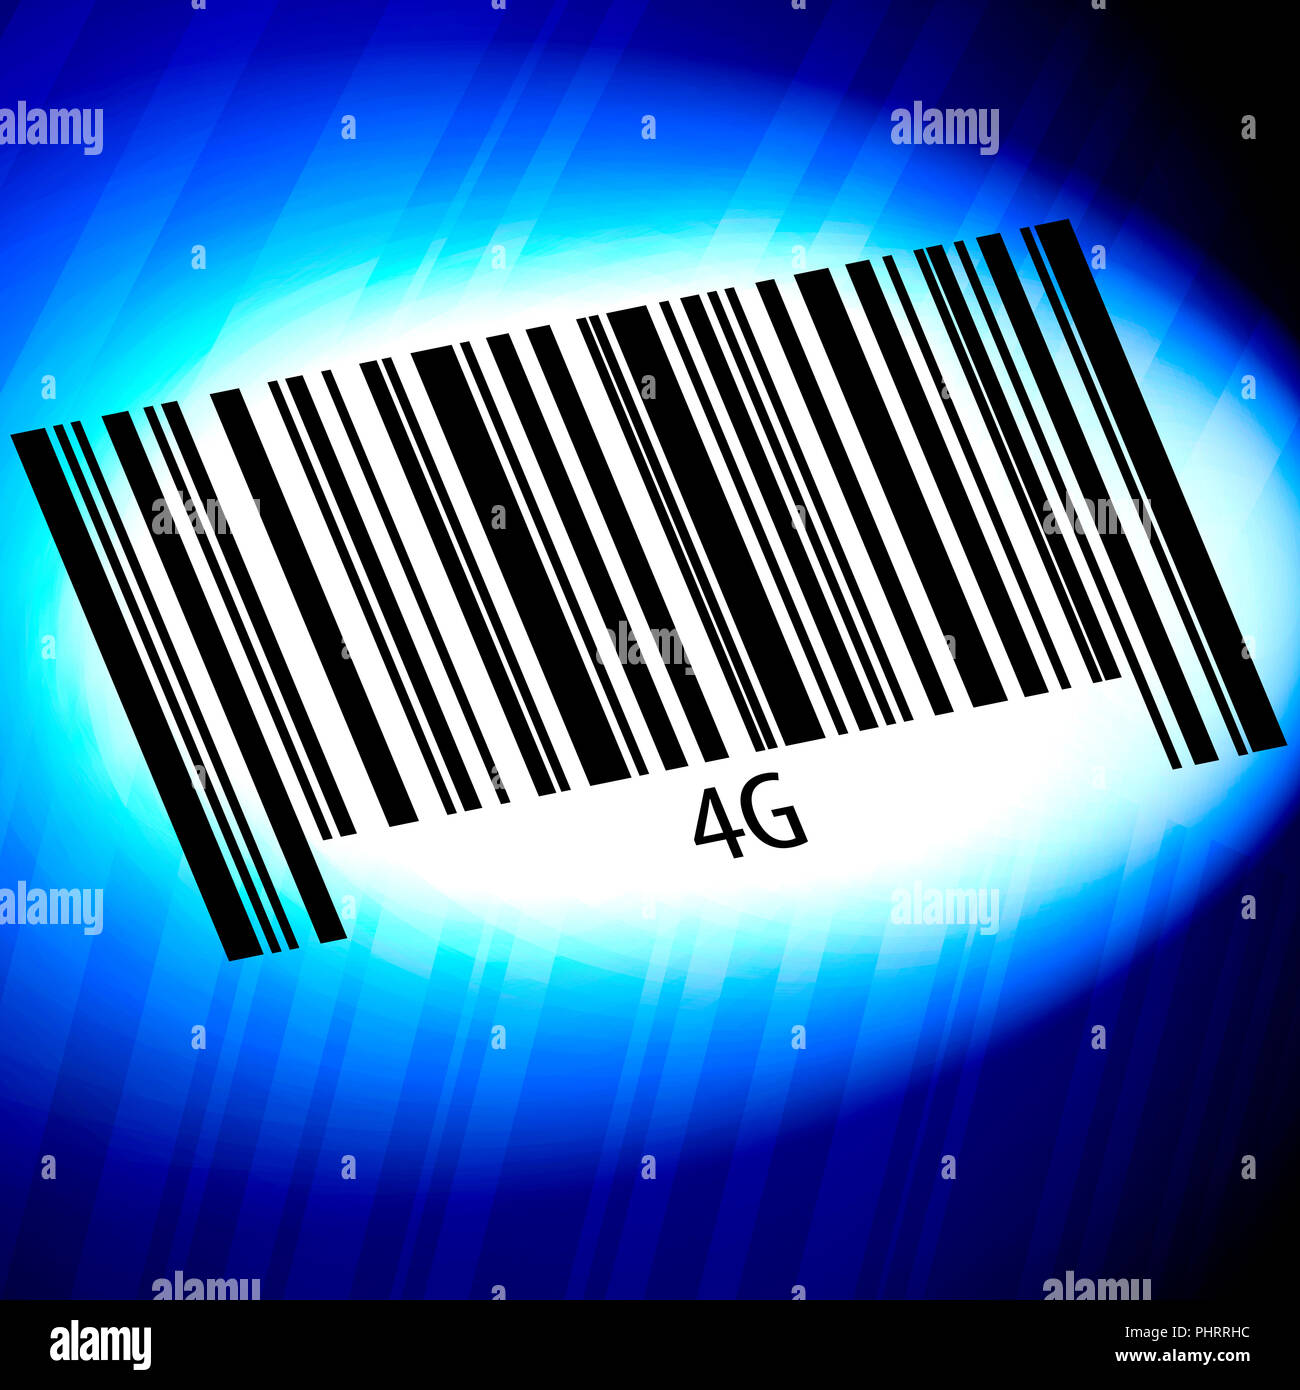 4G - barcode with blue Background - Stock Image